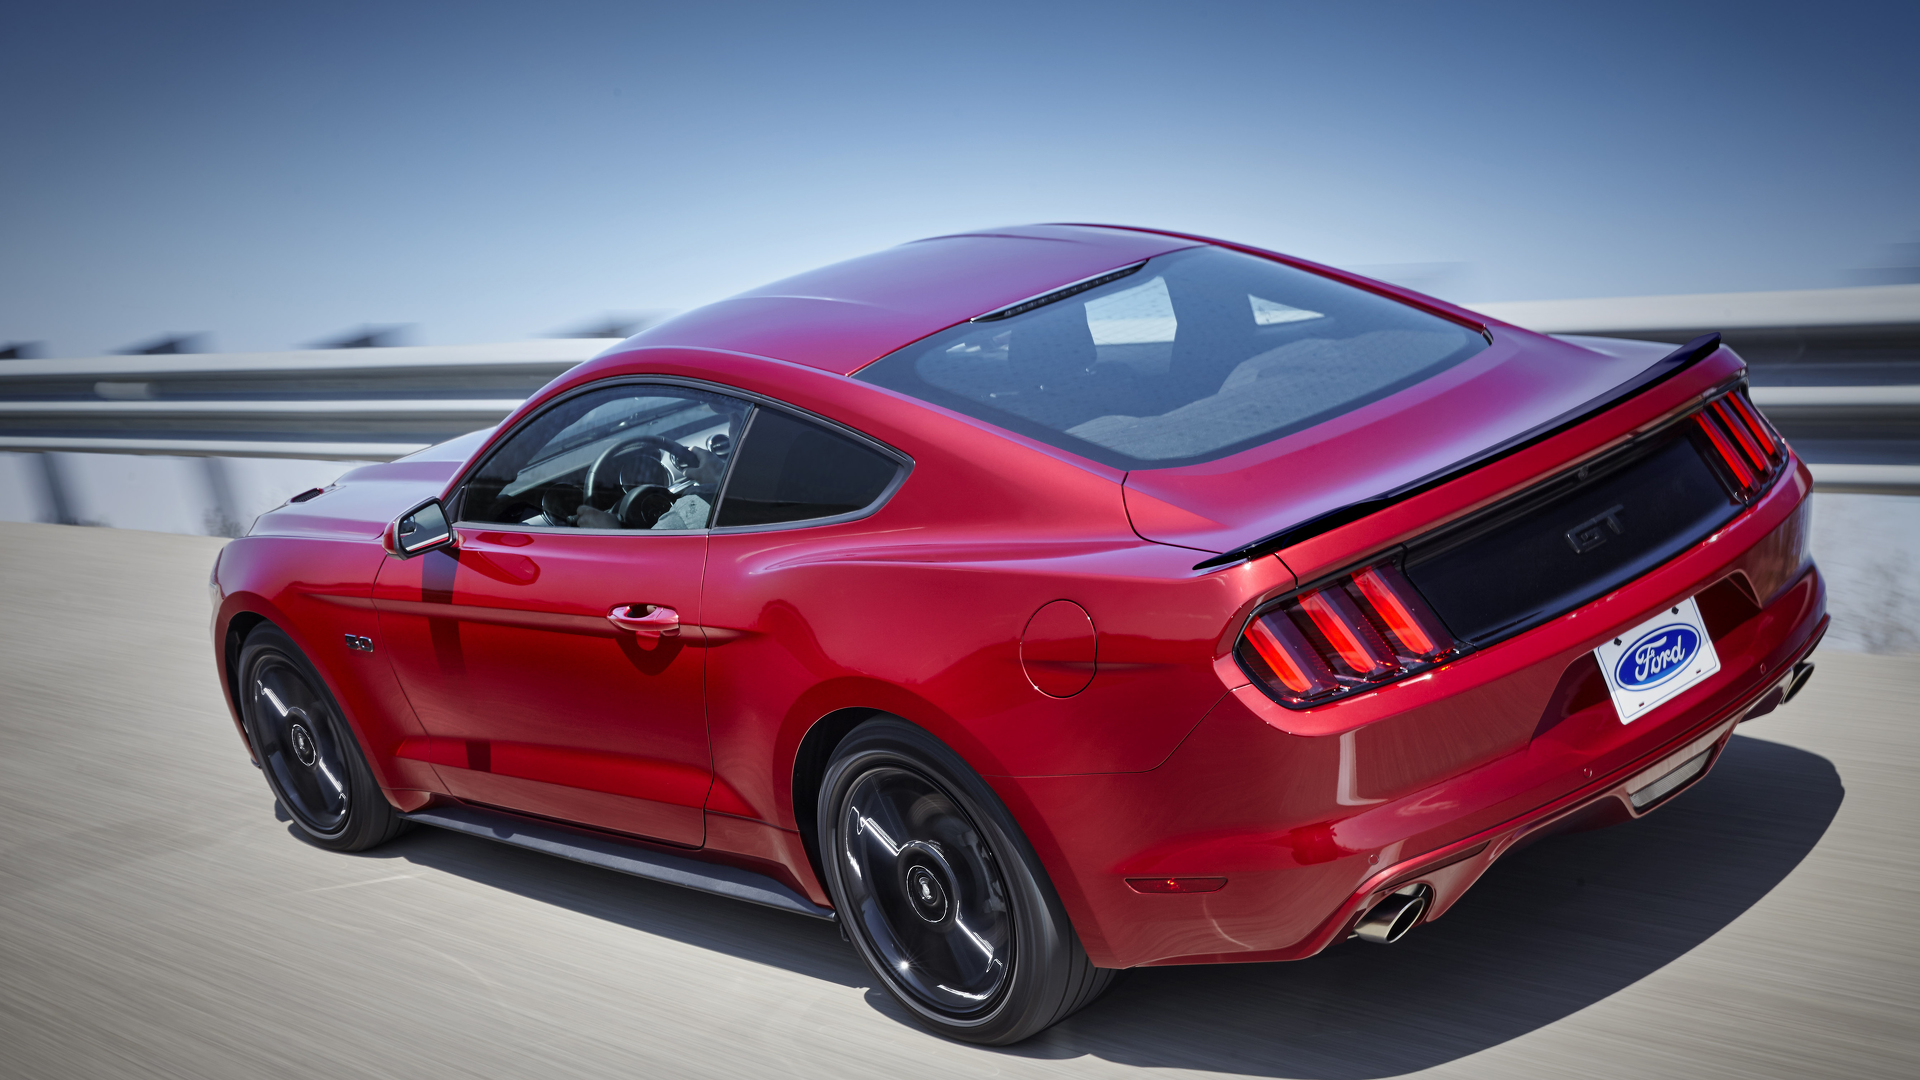 Ford Com Mustang >> Ford Mustang News And Reviews Motor1 Com